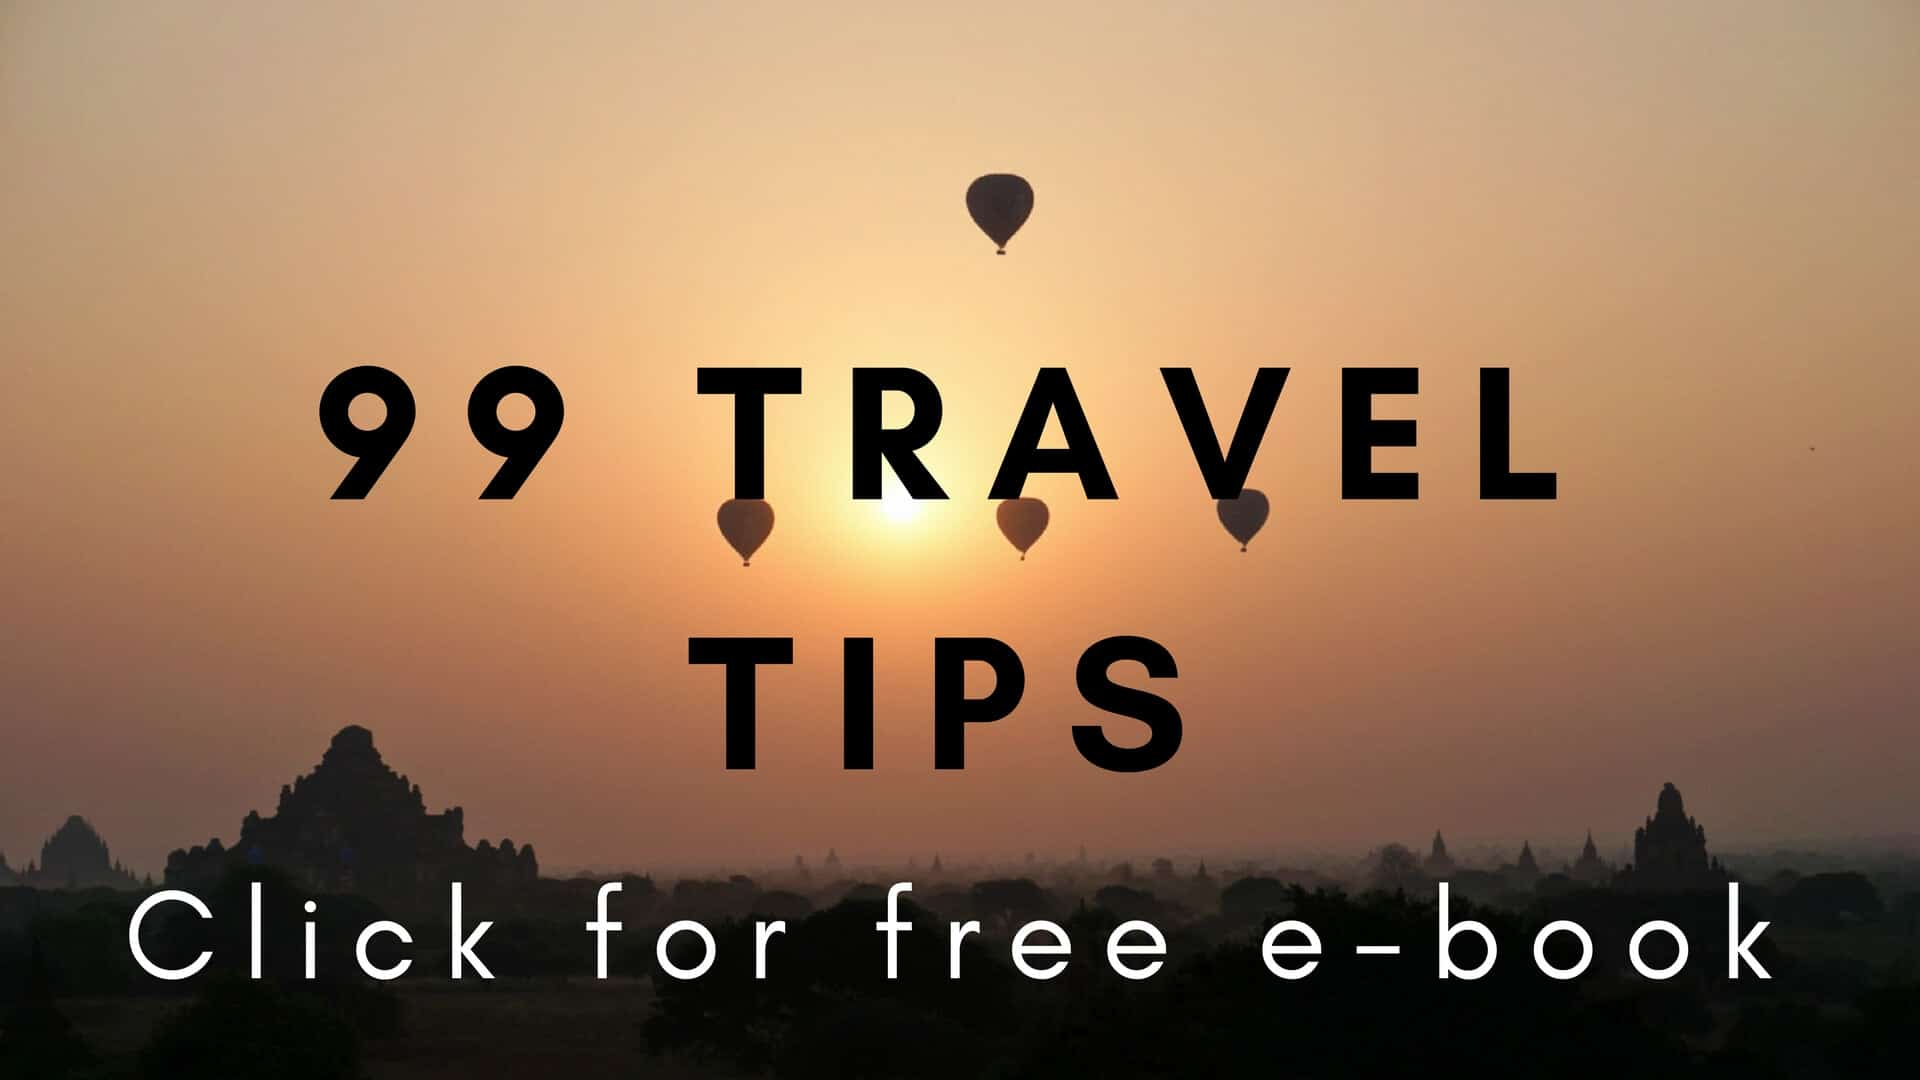 99 Travel Tips